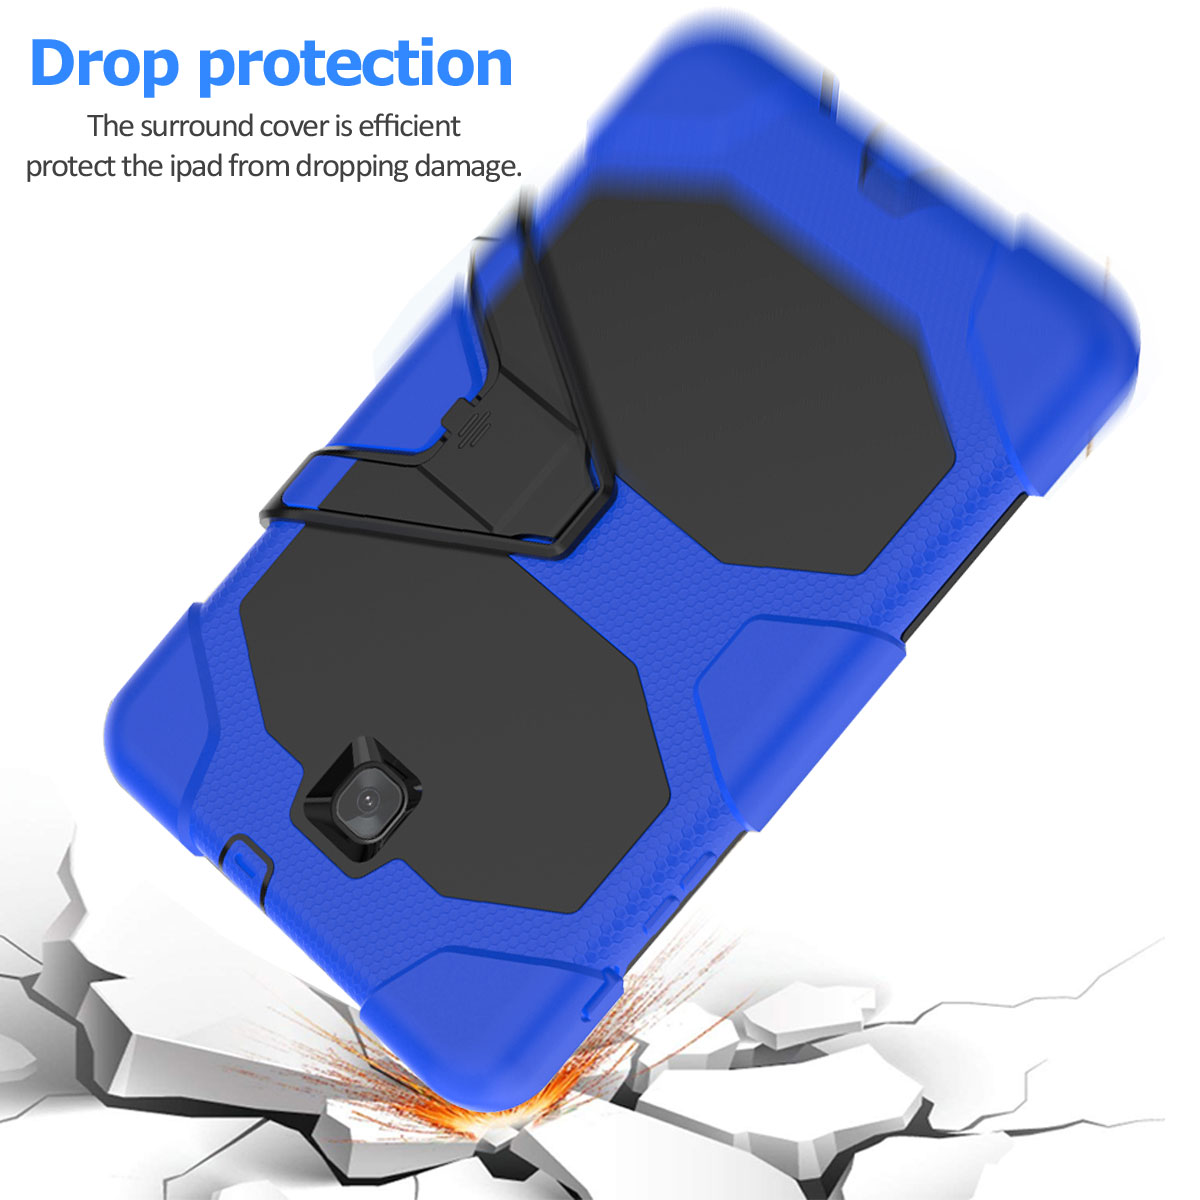 Rugged-Hard-Case-For-Samsung-Galaxy-Tab-A-8-0-2018-SM-T387-with-Screen-Protector thumbnail 82